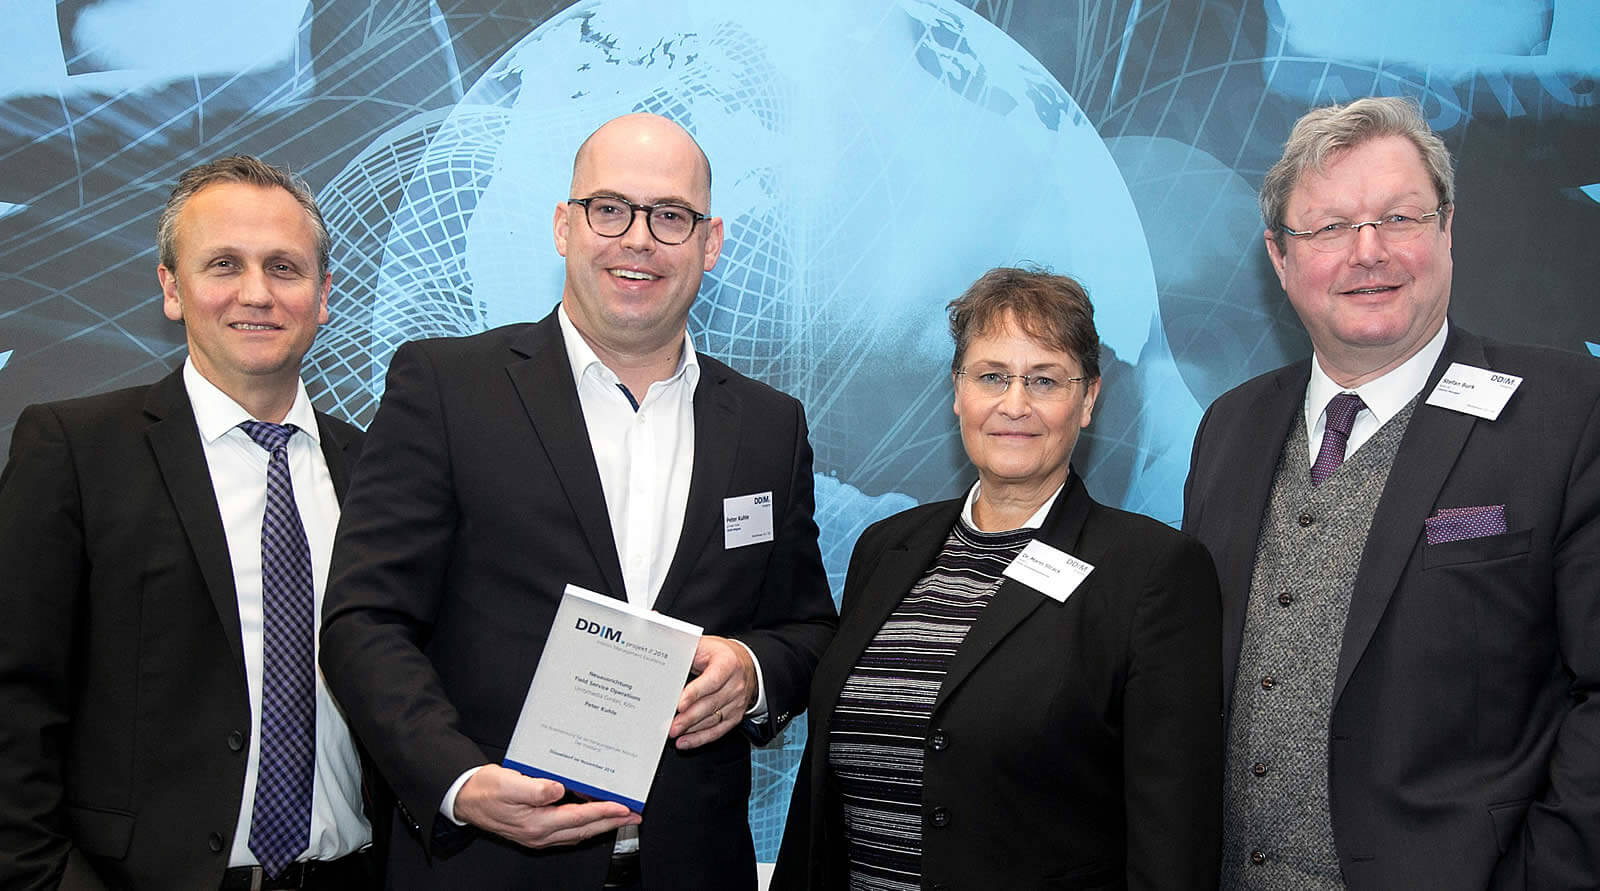 Field Service und Sales gemeinsam besser machen: Interim Manager pK Peter Kuhle>From Media Library